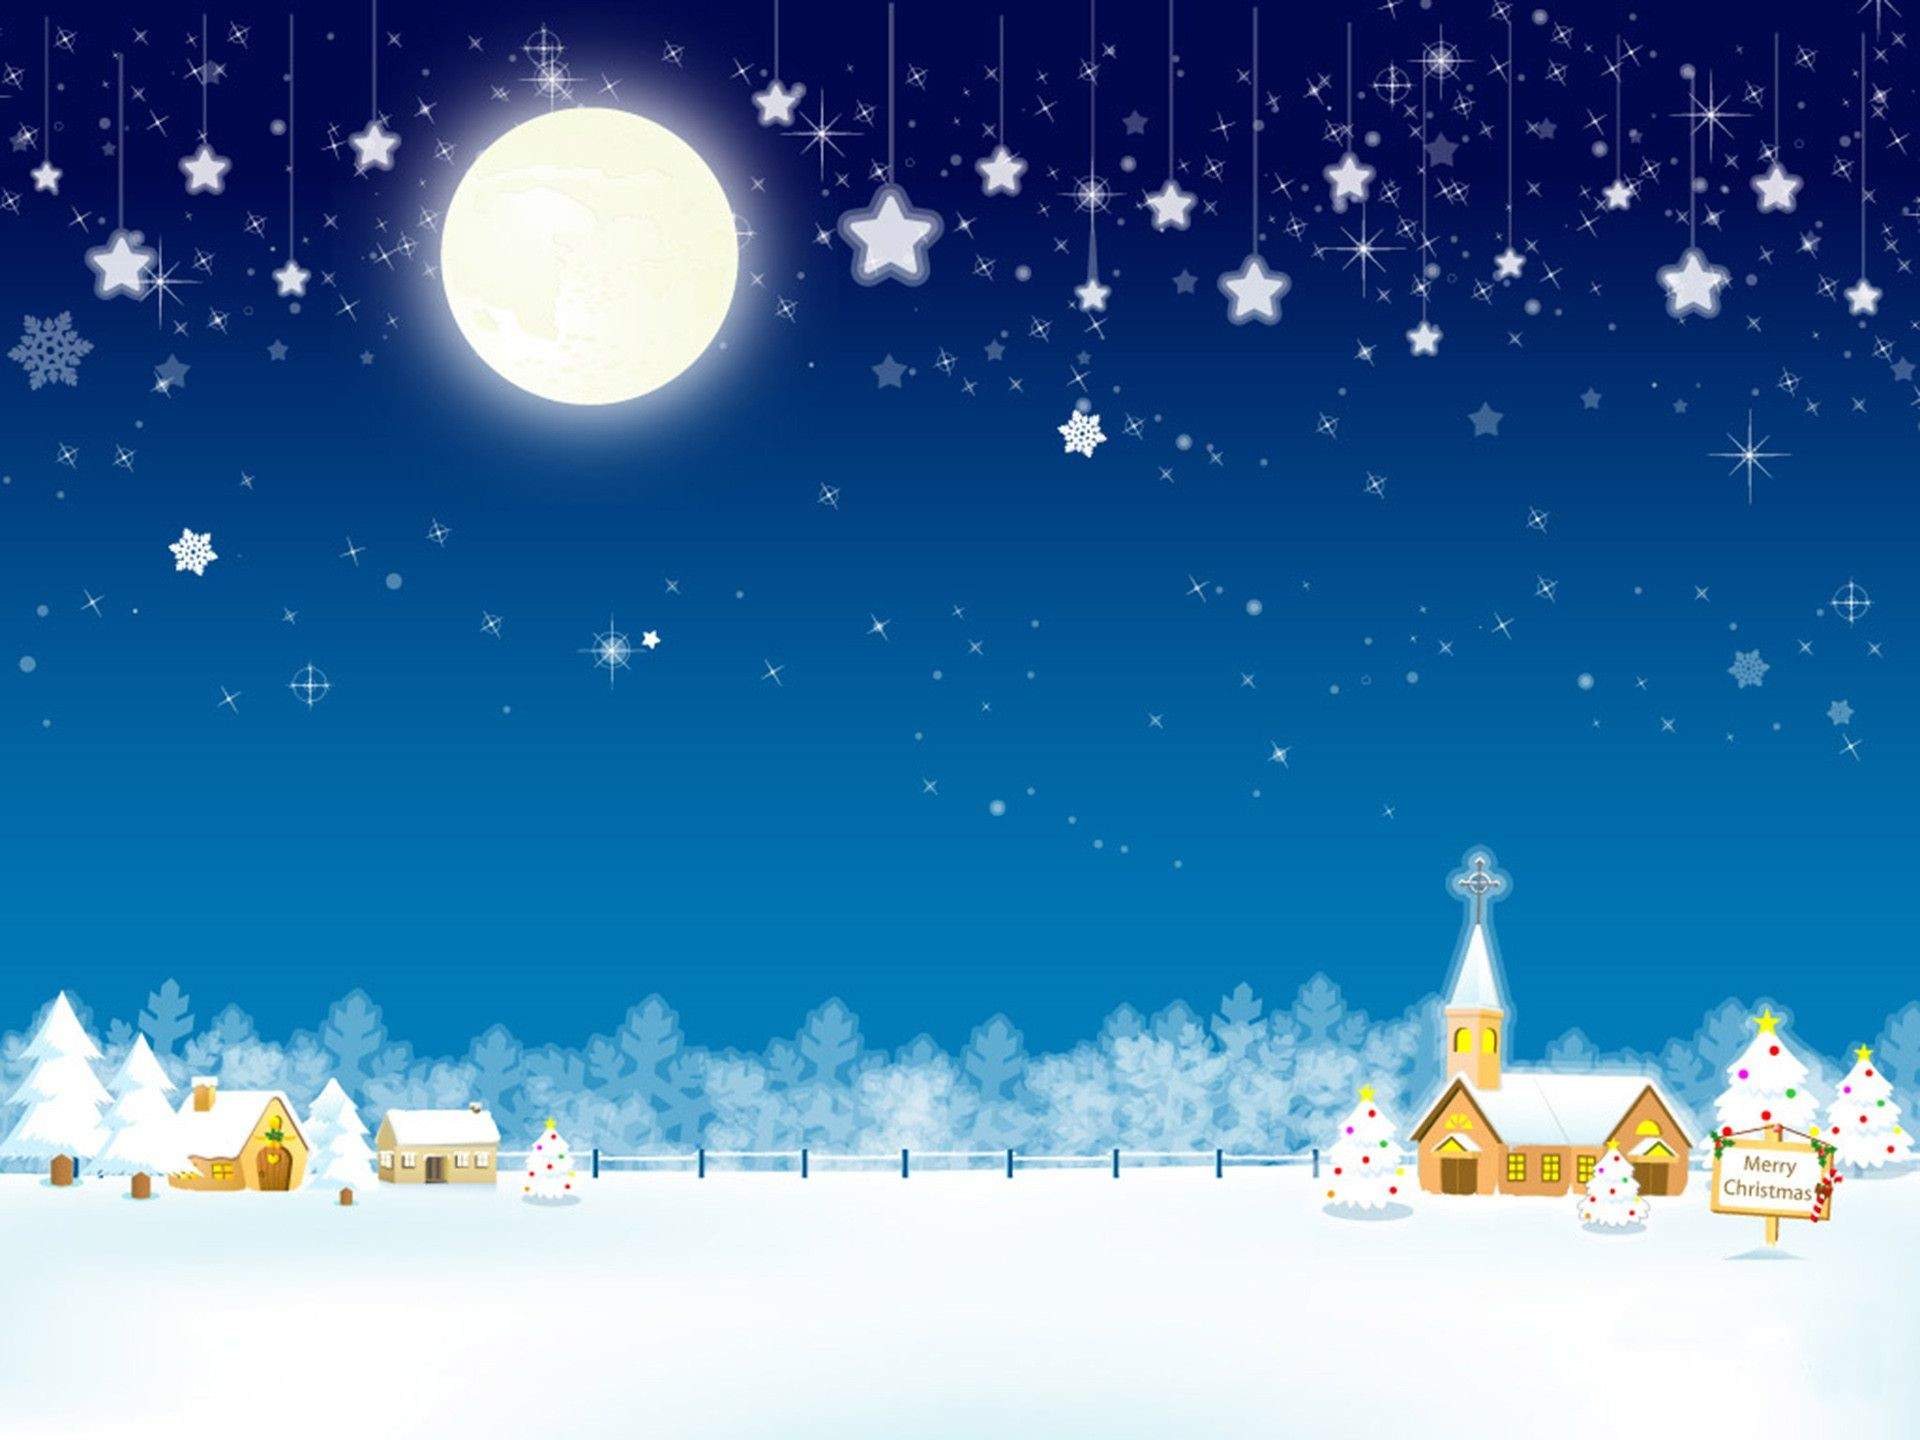 New Merry Christmas Cool Backgrounds   Download Free Word, Excel, PDF